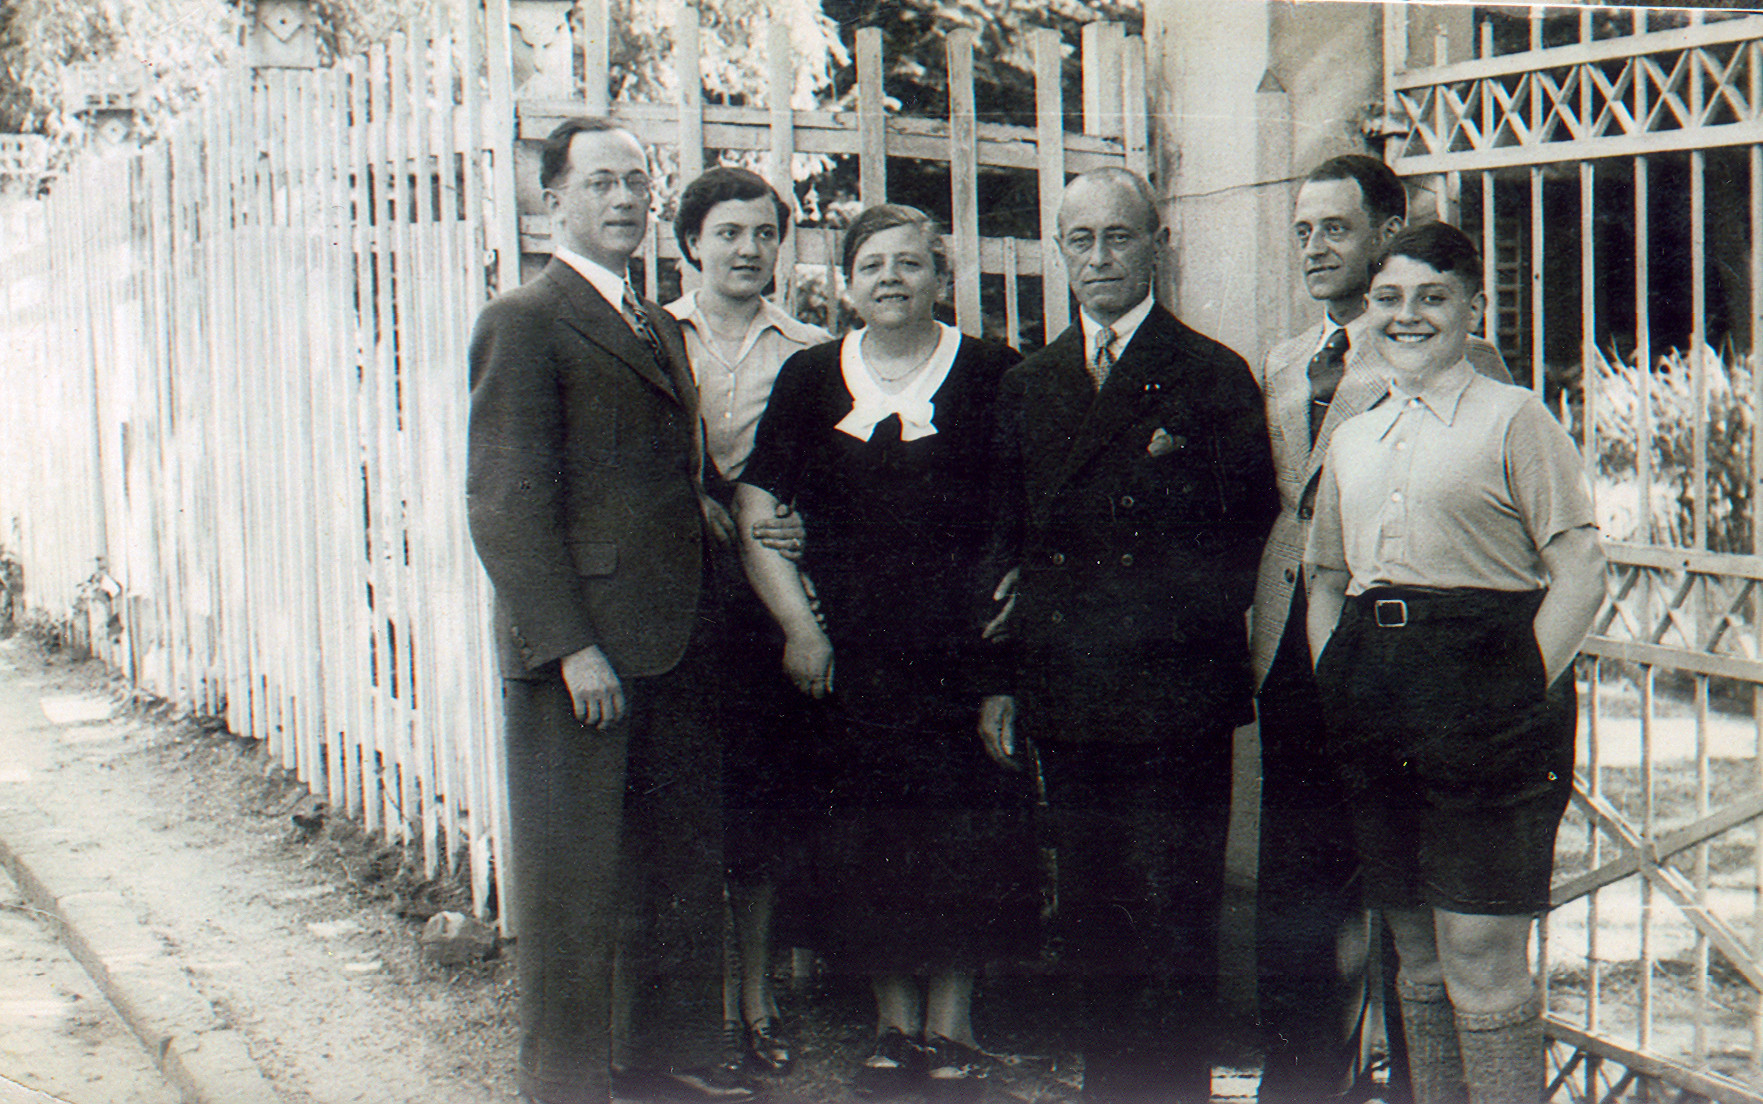 Group portrait of a German Jewish family.  Pictured in the center are parents Hedwig and Moritz Oppenheimer, with their children Paul (far left), Elsie (second from left), Hans (second from right) and Fritz (far right).